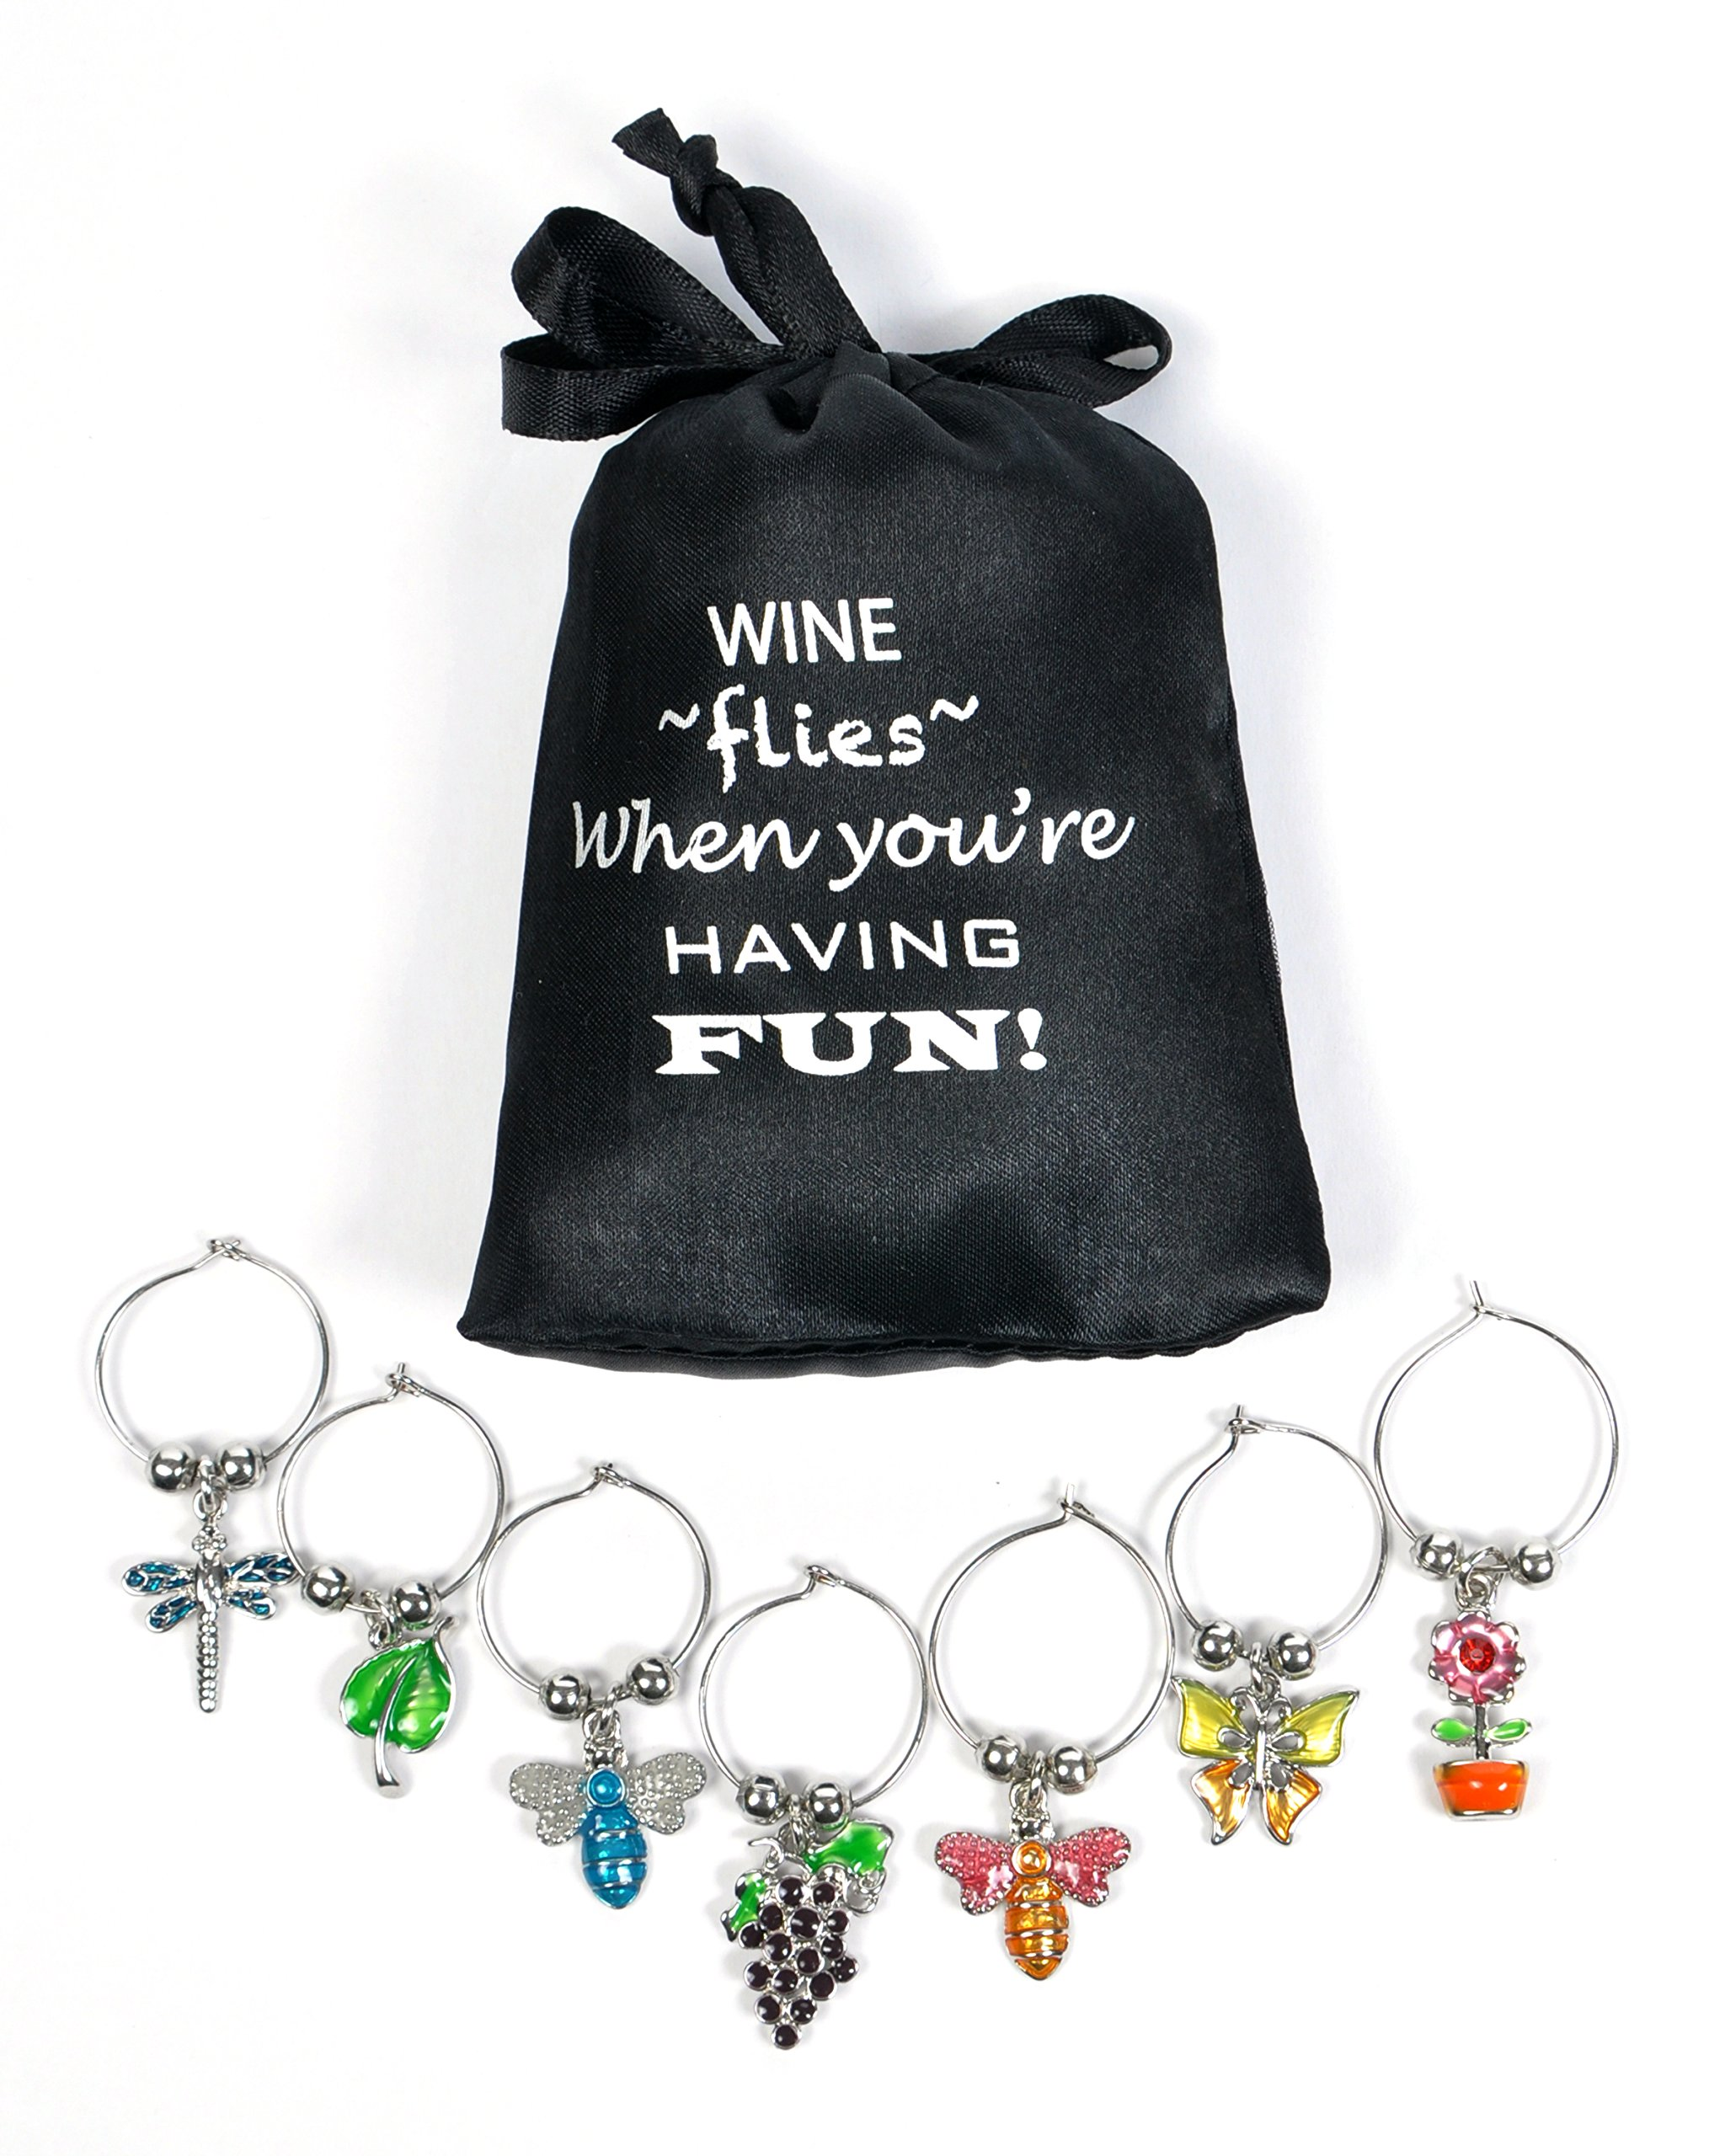 Flowers & Insects Wine Glass Charms, Hand Painted - Set of 7 with Sateen Storage Bag